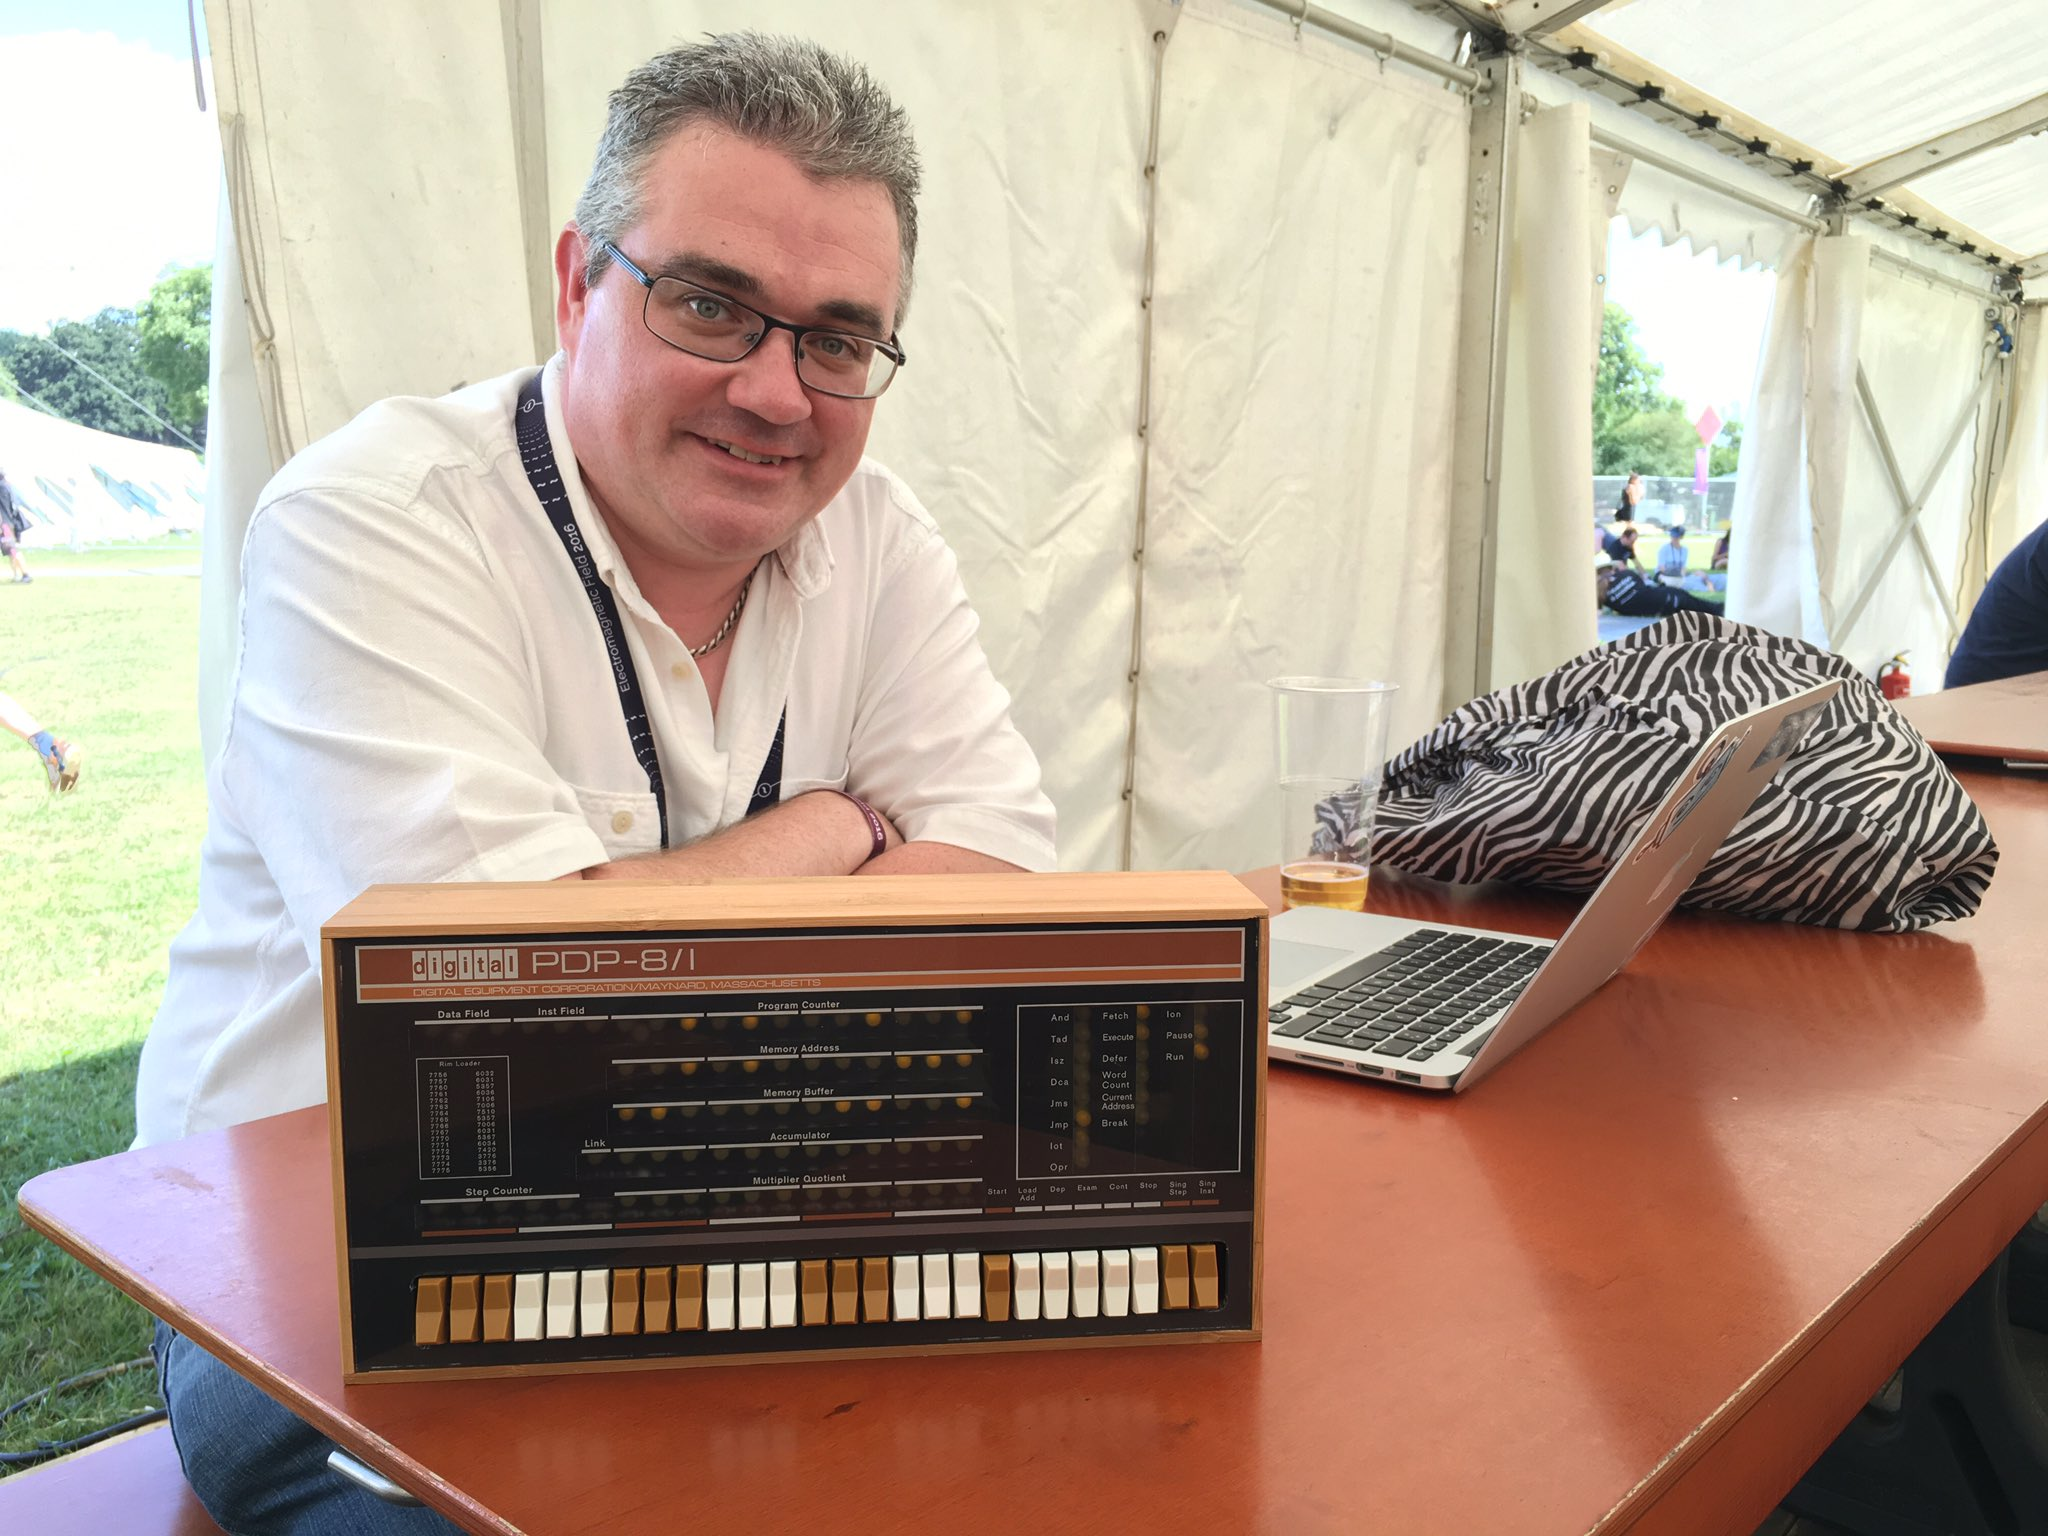 Chatting with @MrPJEvans about his PDP-8/I  A 2/3 version of the worlds first personal computer. #emfcamp https://t.co/XXaWaHgN1Y